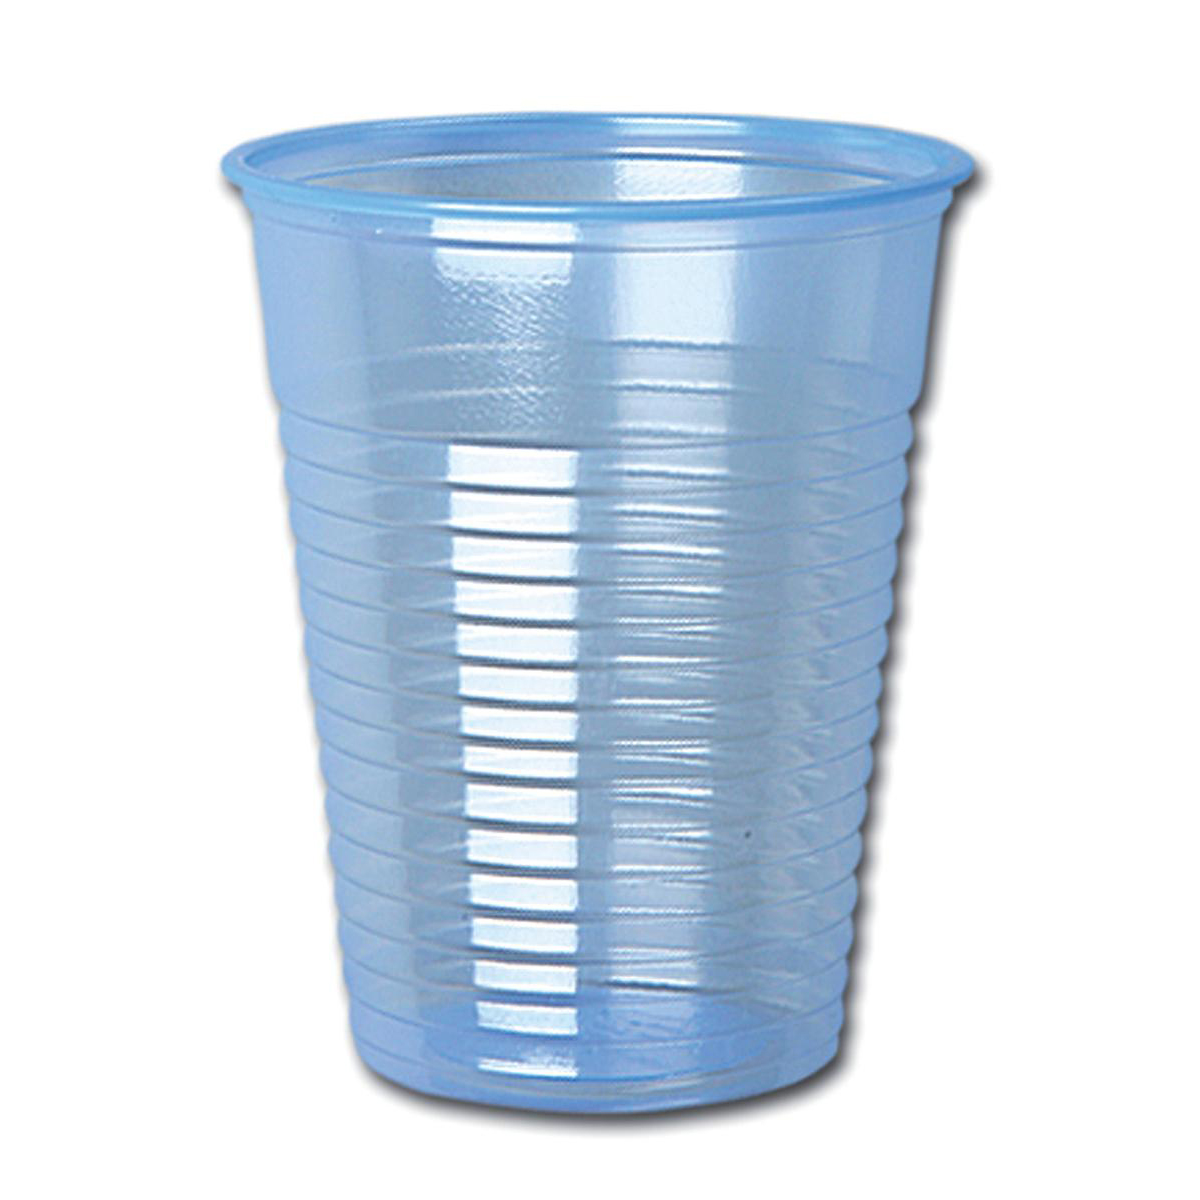 Water Cups Plastic Non Vending for Cold Drinks 7oz 200ml Clear Blue Pack 1000